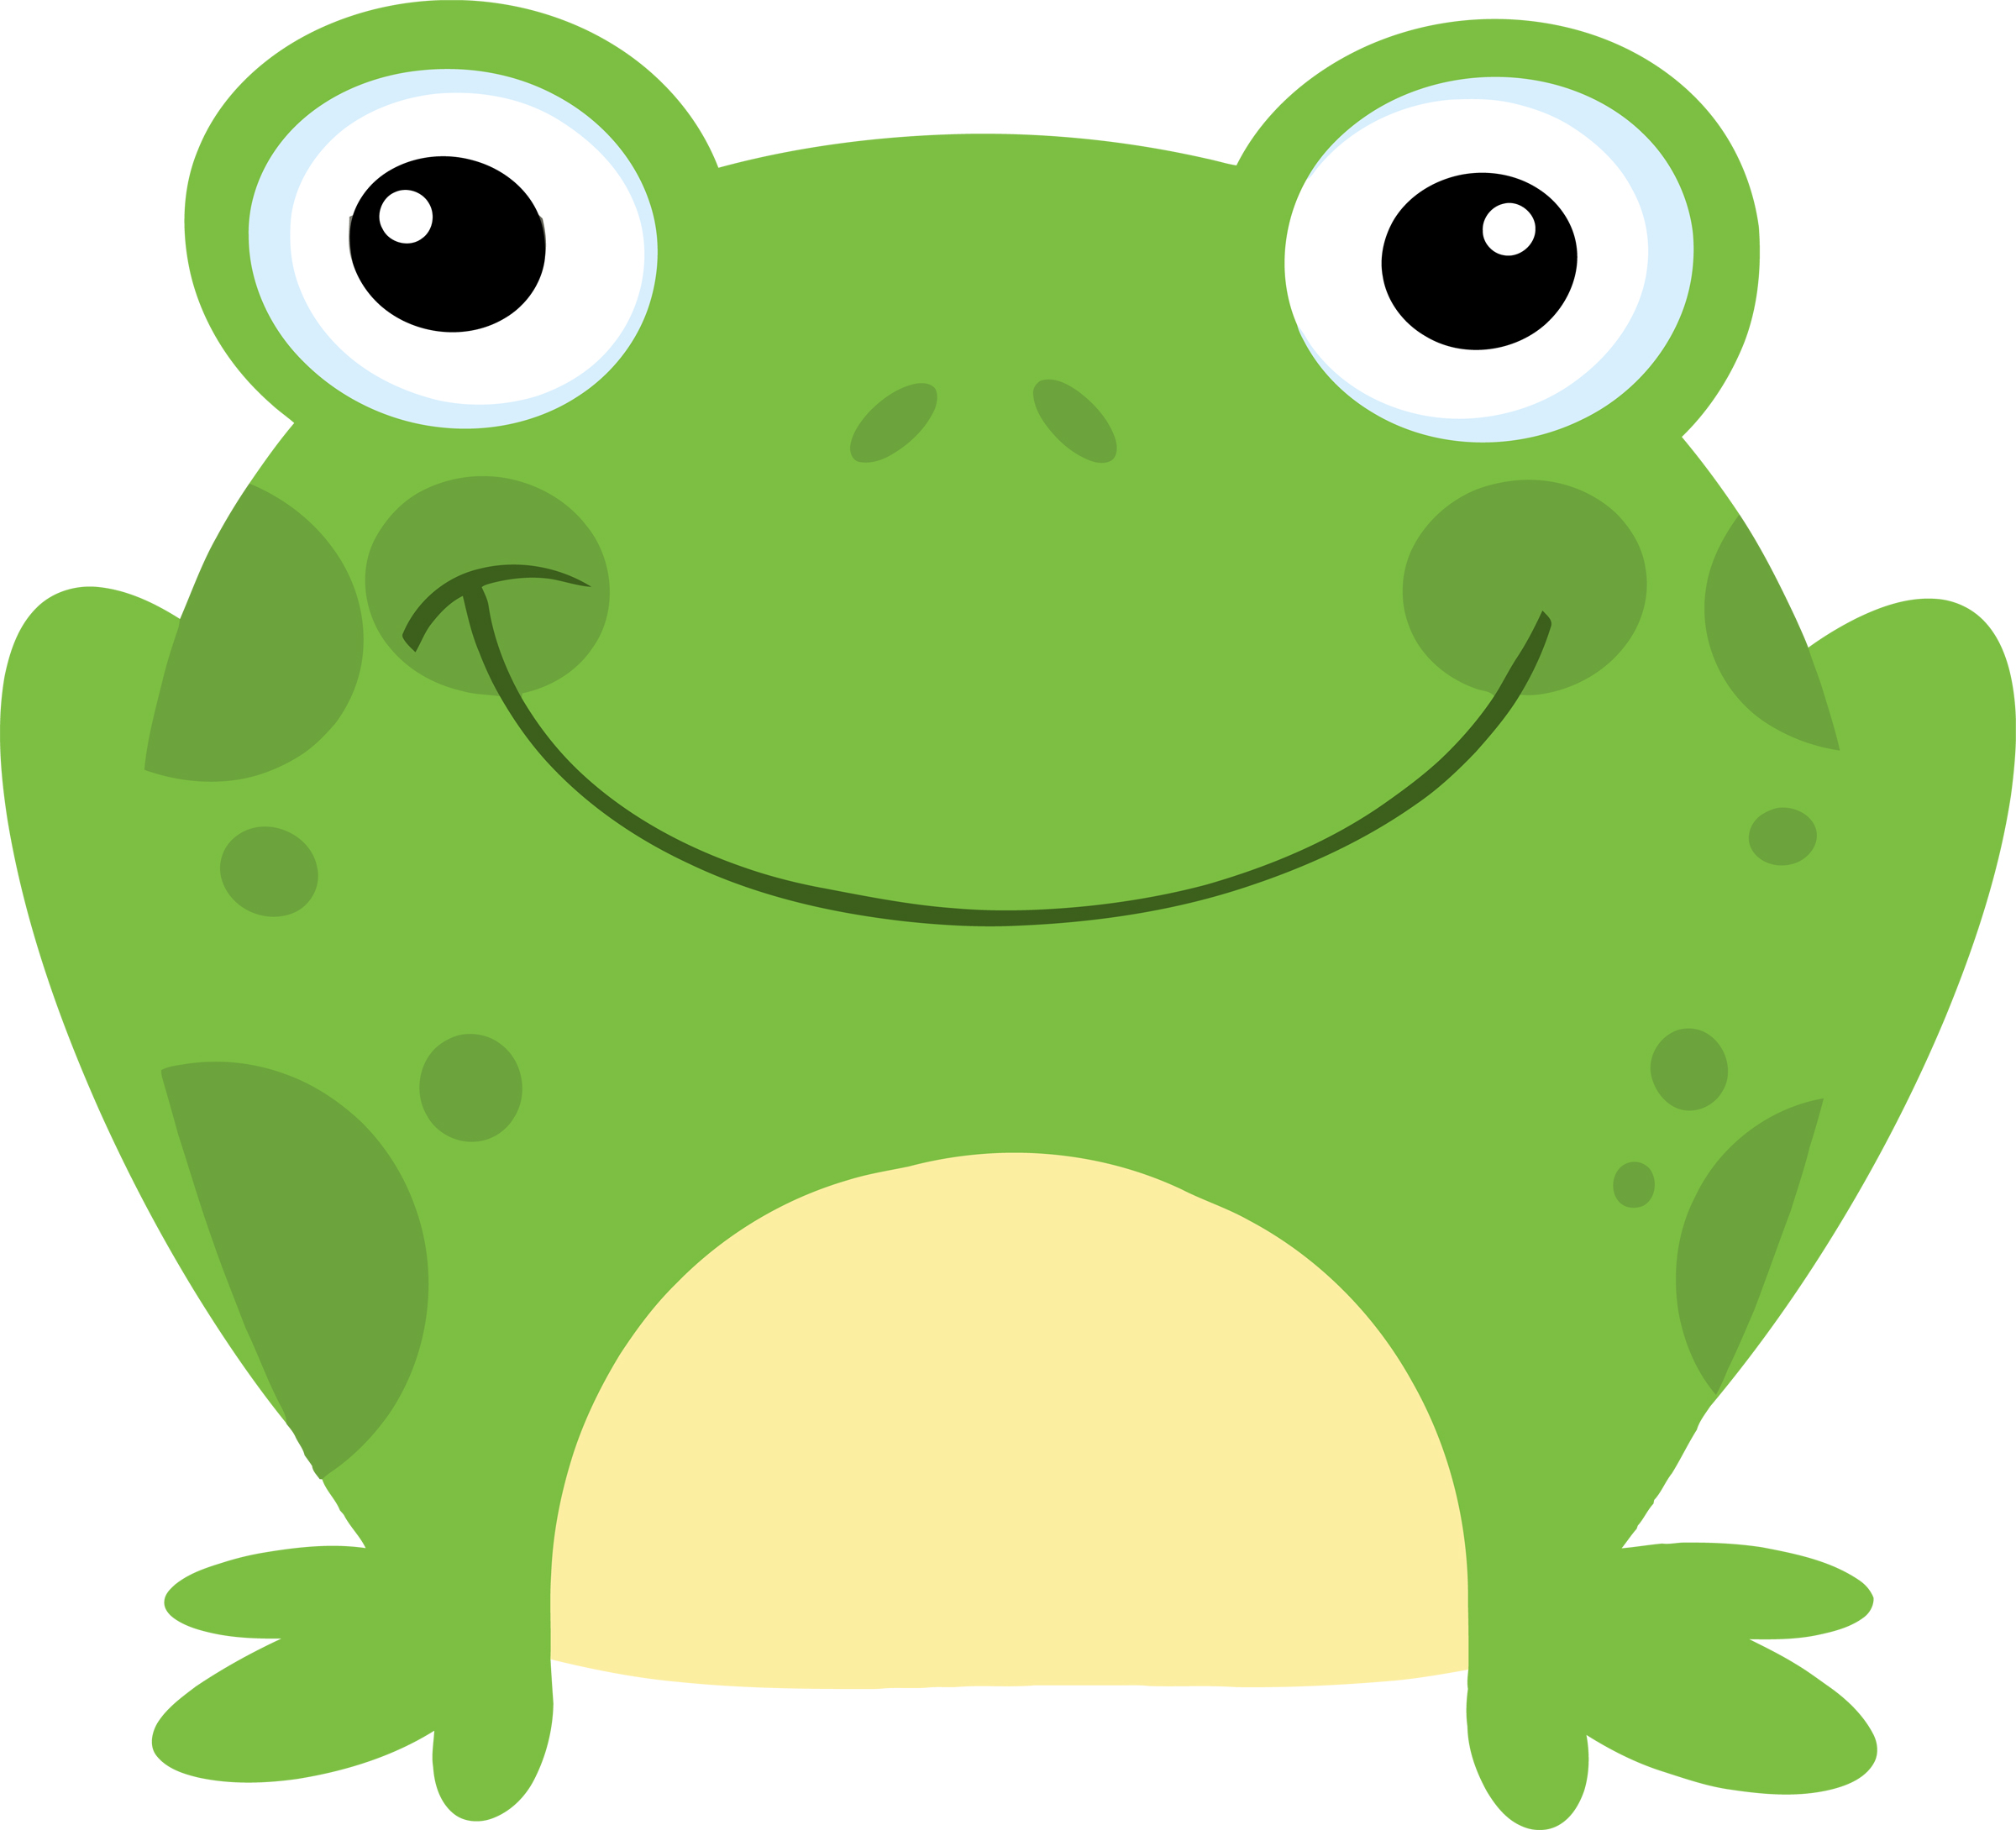 Frog clipart #2, Download drawings